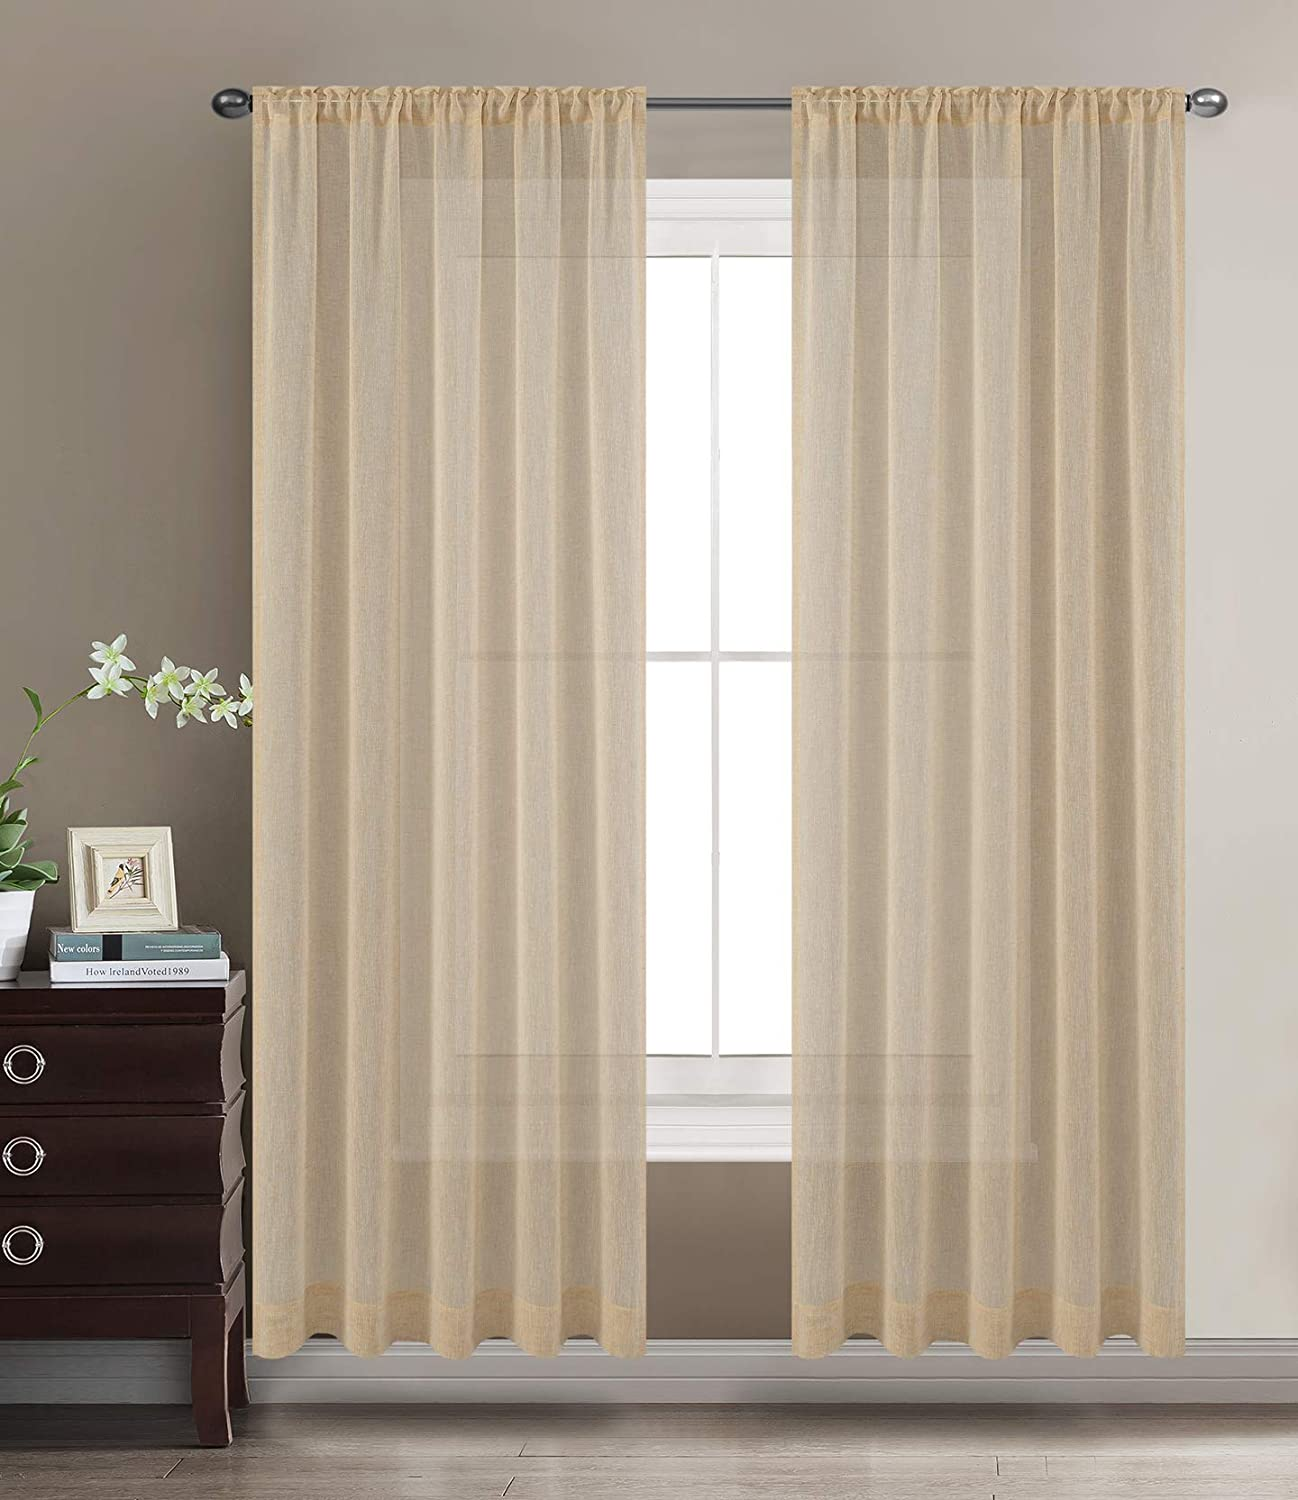 TEXPLUS Set of 2 Pieces Rod Pocket and Back Tab Solid Faux Linen Sheer Curtain Panels with Tie Backs (Mellow Yellow, 2x52 Wx84 L)